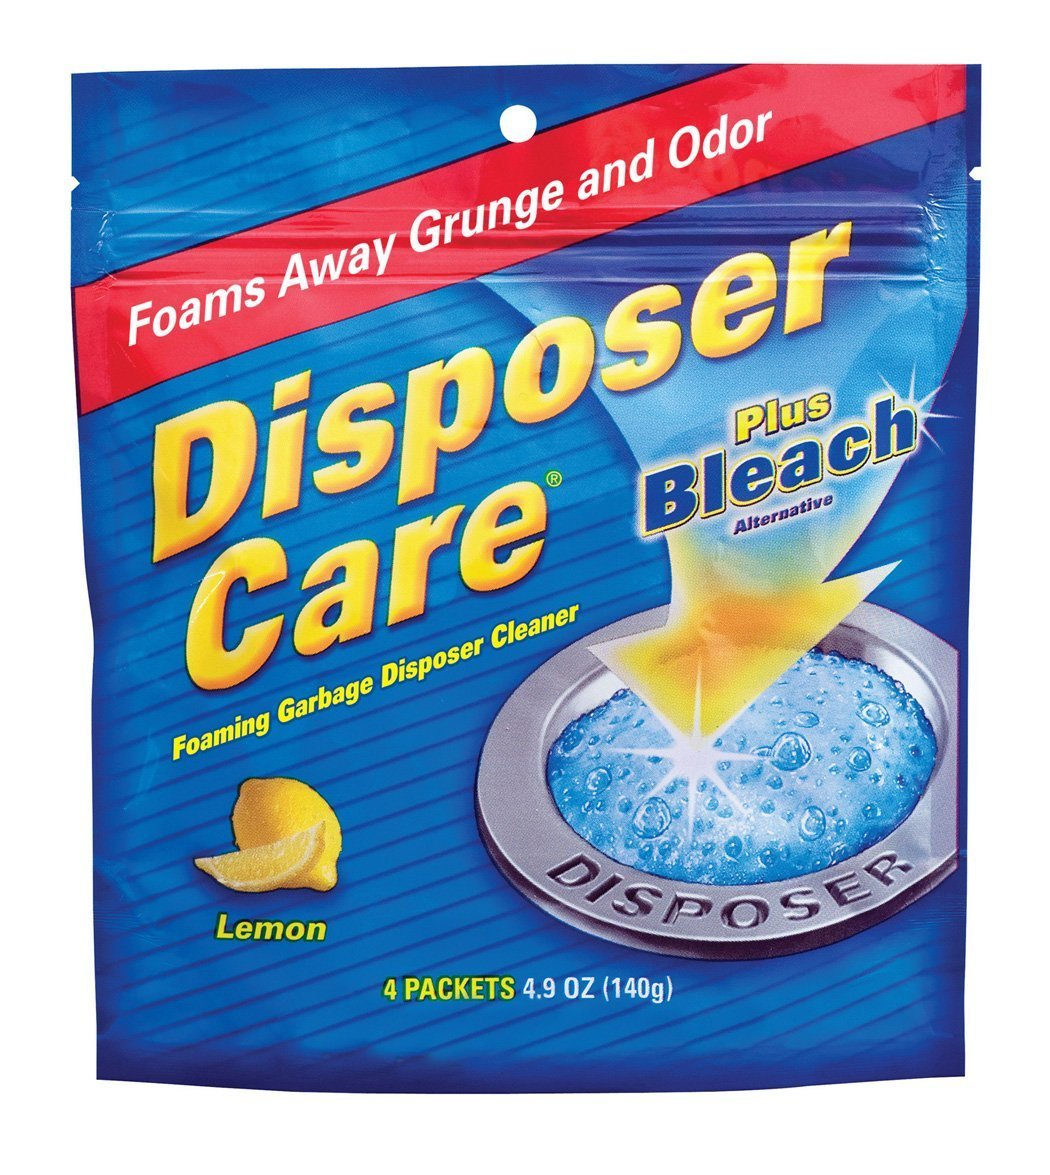 Glisten New Super Size Packageage DP06N-PB Disposer Care Foaming Garbage Disposer Cleaner-4.9 Ounces each Powerful Disposal Cleanser for Complete Cleaning of Entire DisposerNew Super Size Package 40 Packets Lemon + Plus Bleach by CocoSmile (Image #1)